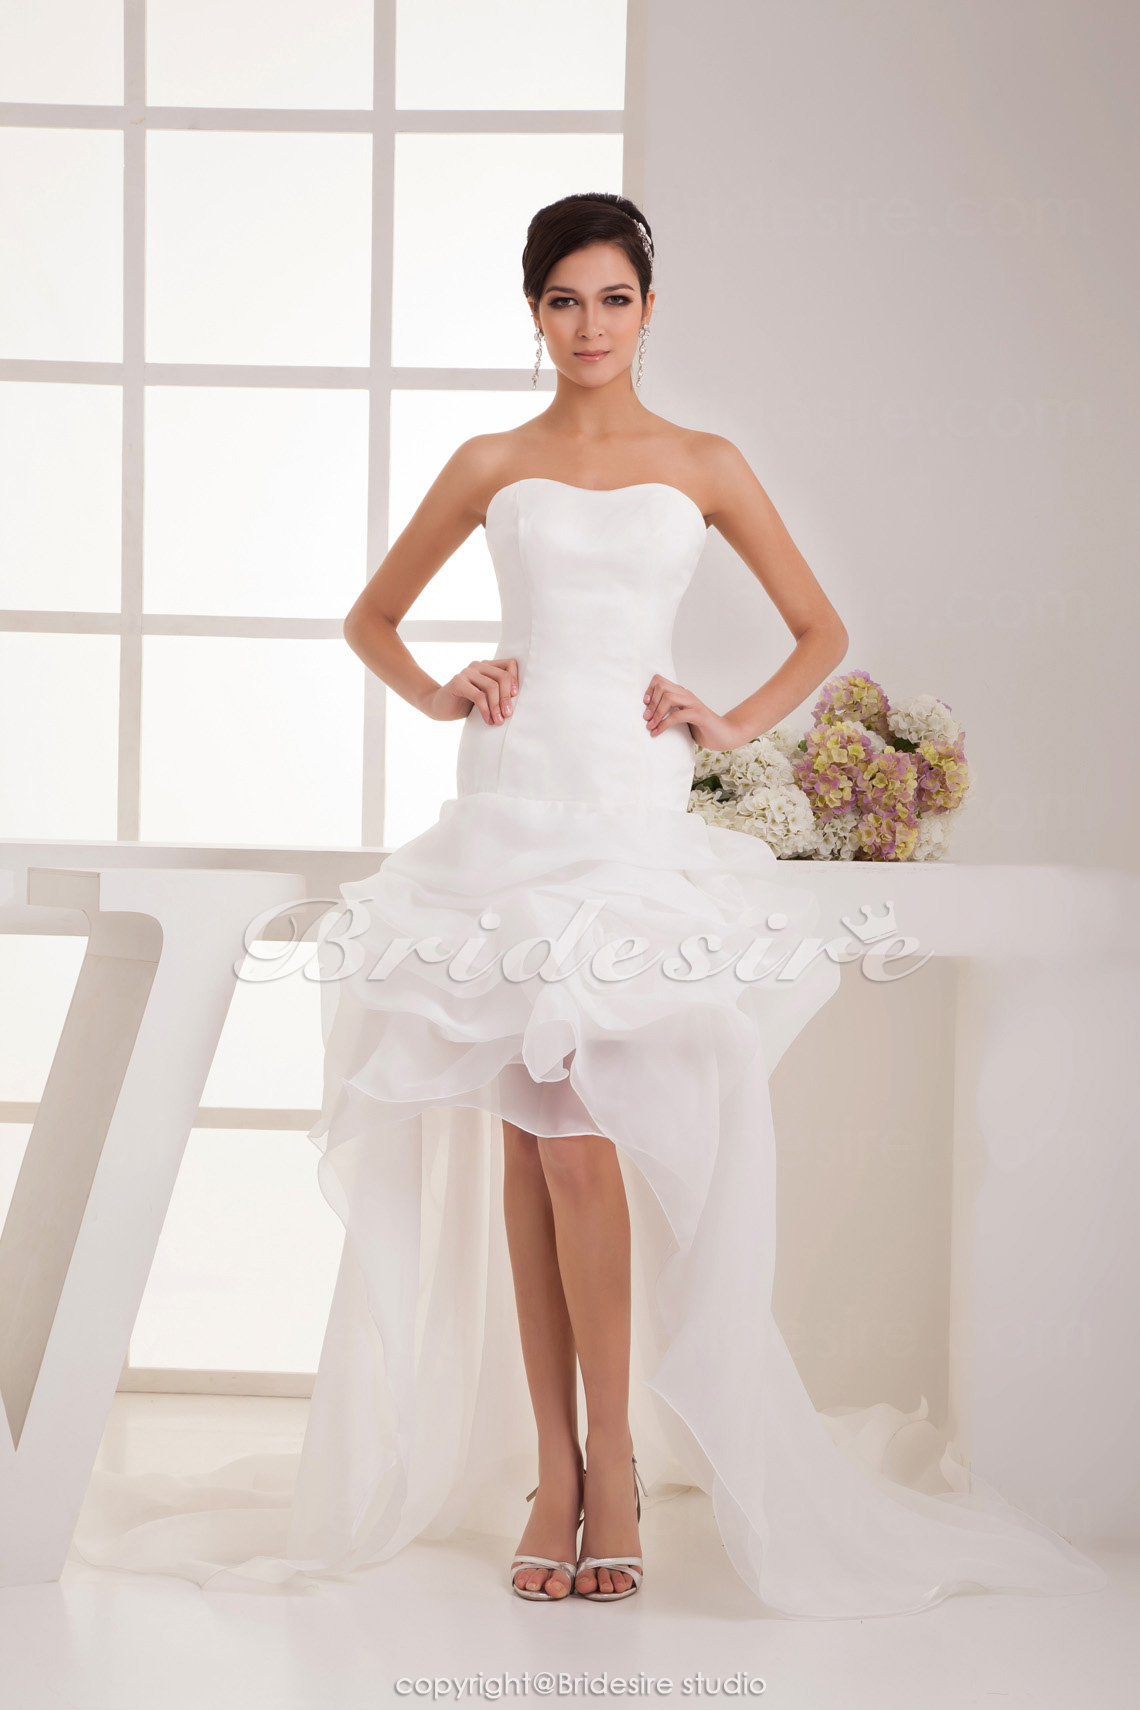 Sheath/Column Sweetheart Asymmetrical Sleeveless Satin Wedding Dress